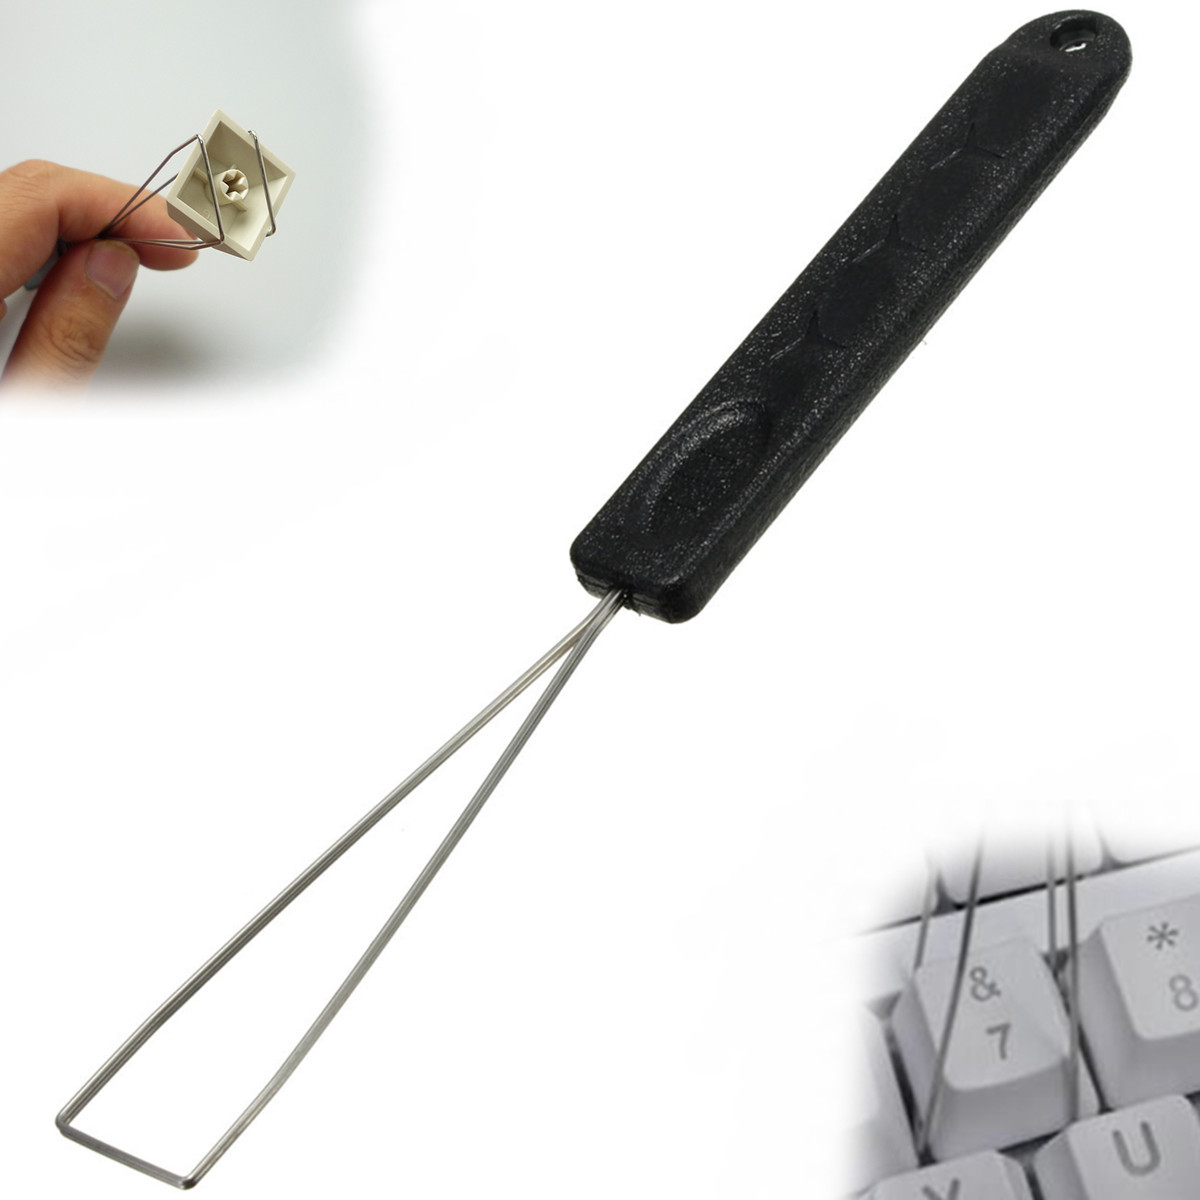 Keyboard Key Keycap Puller Key Cap Remover With Unloading Steel Cleaning Tool Computer Accessories For Office School